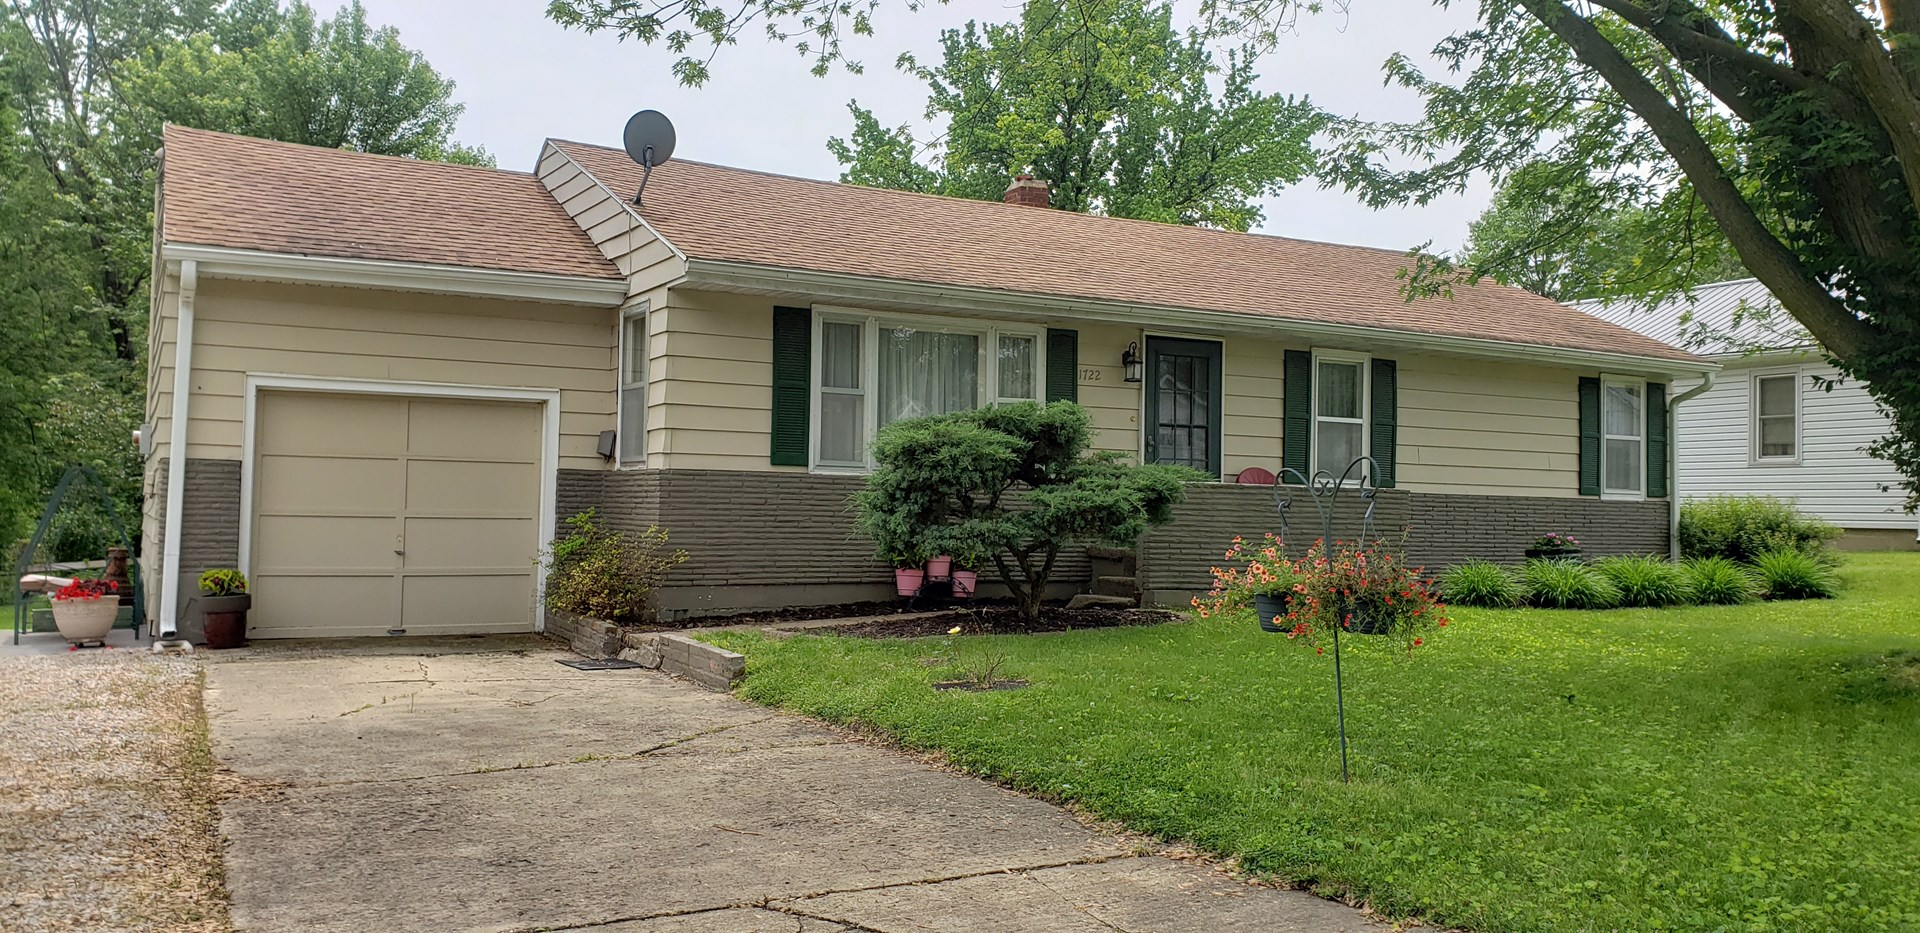 Well-Kept Home With A Park-Like Setting In Town Chillicothe